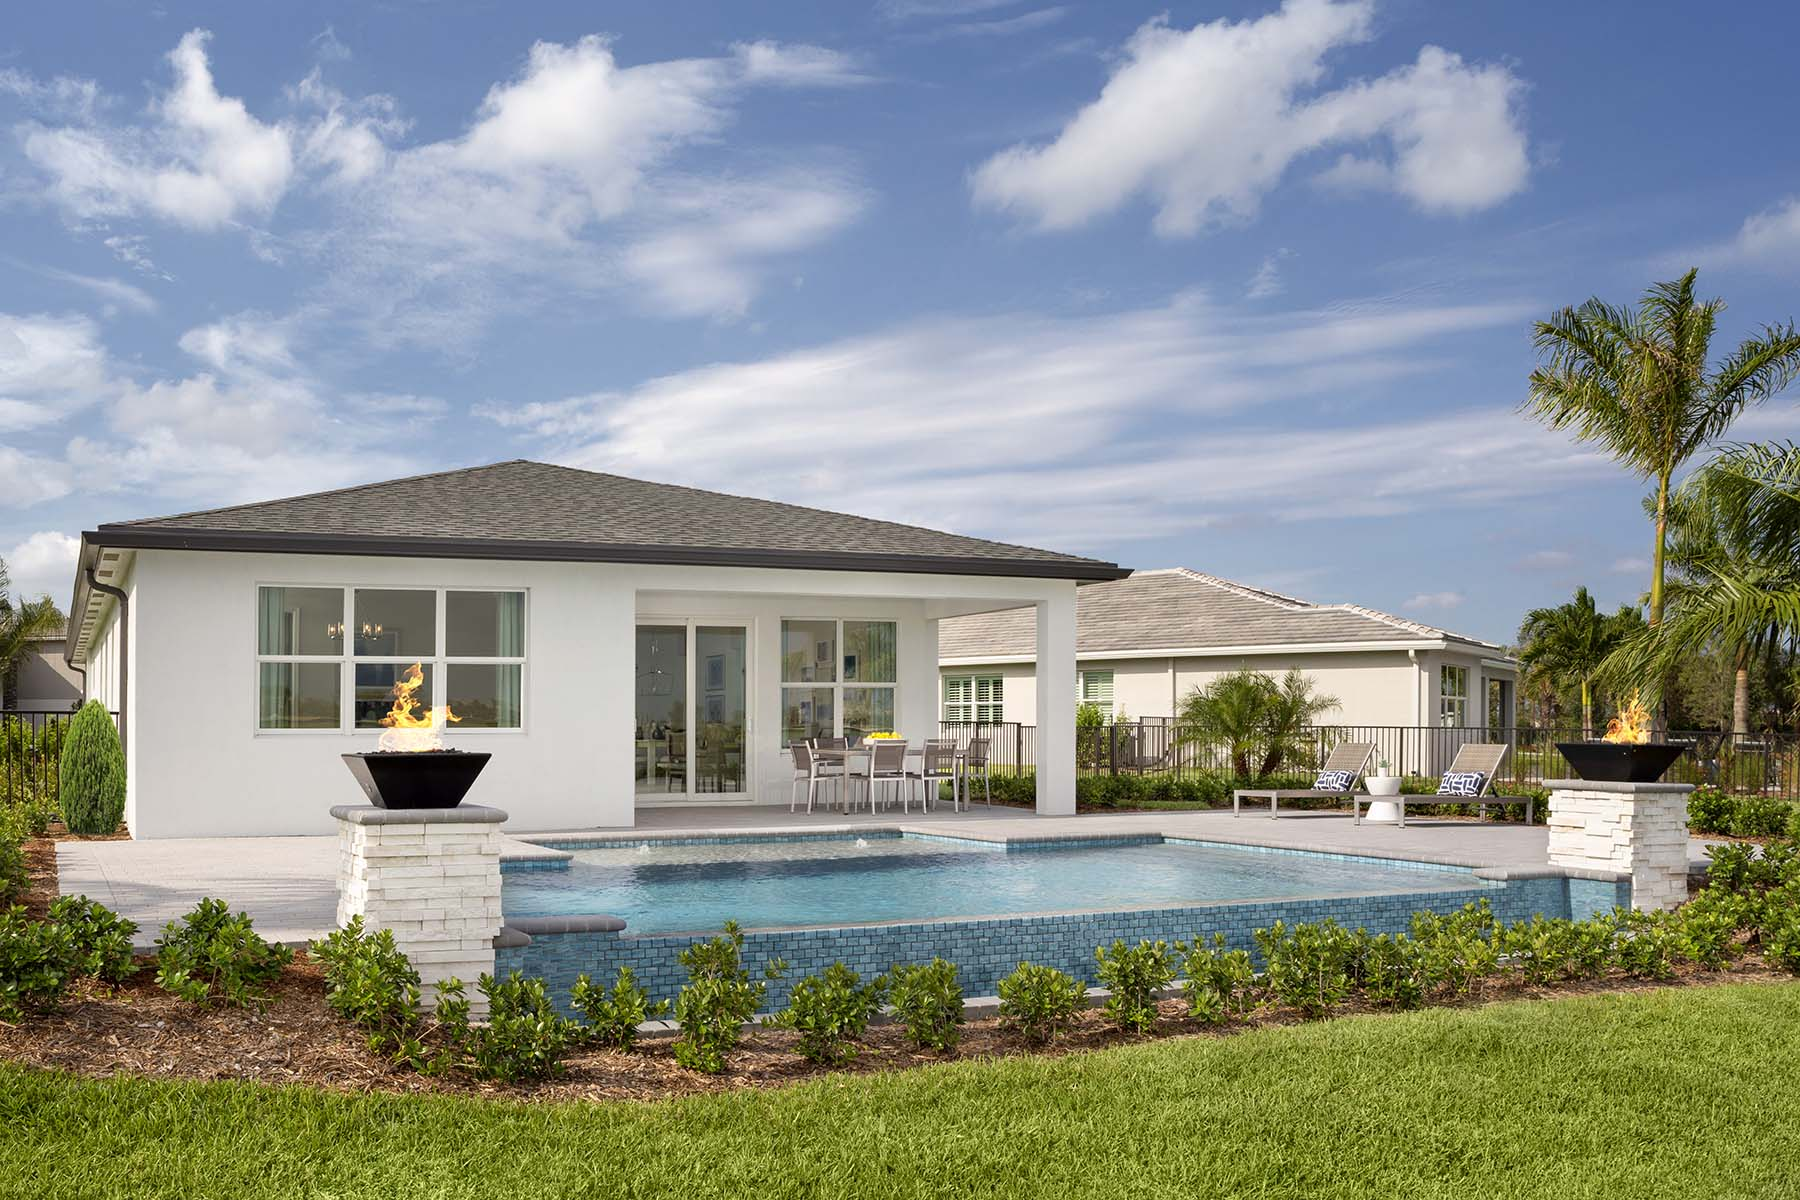 Aspen Plan House Backyard at Tradition - Manderlie in Port St. Lucie Florida by Mattamy Homes